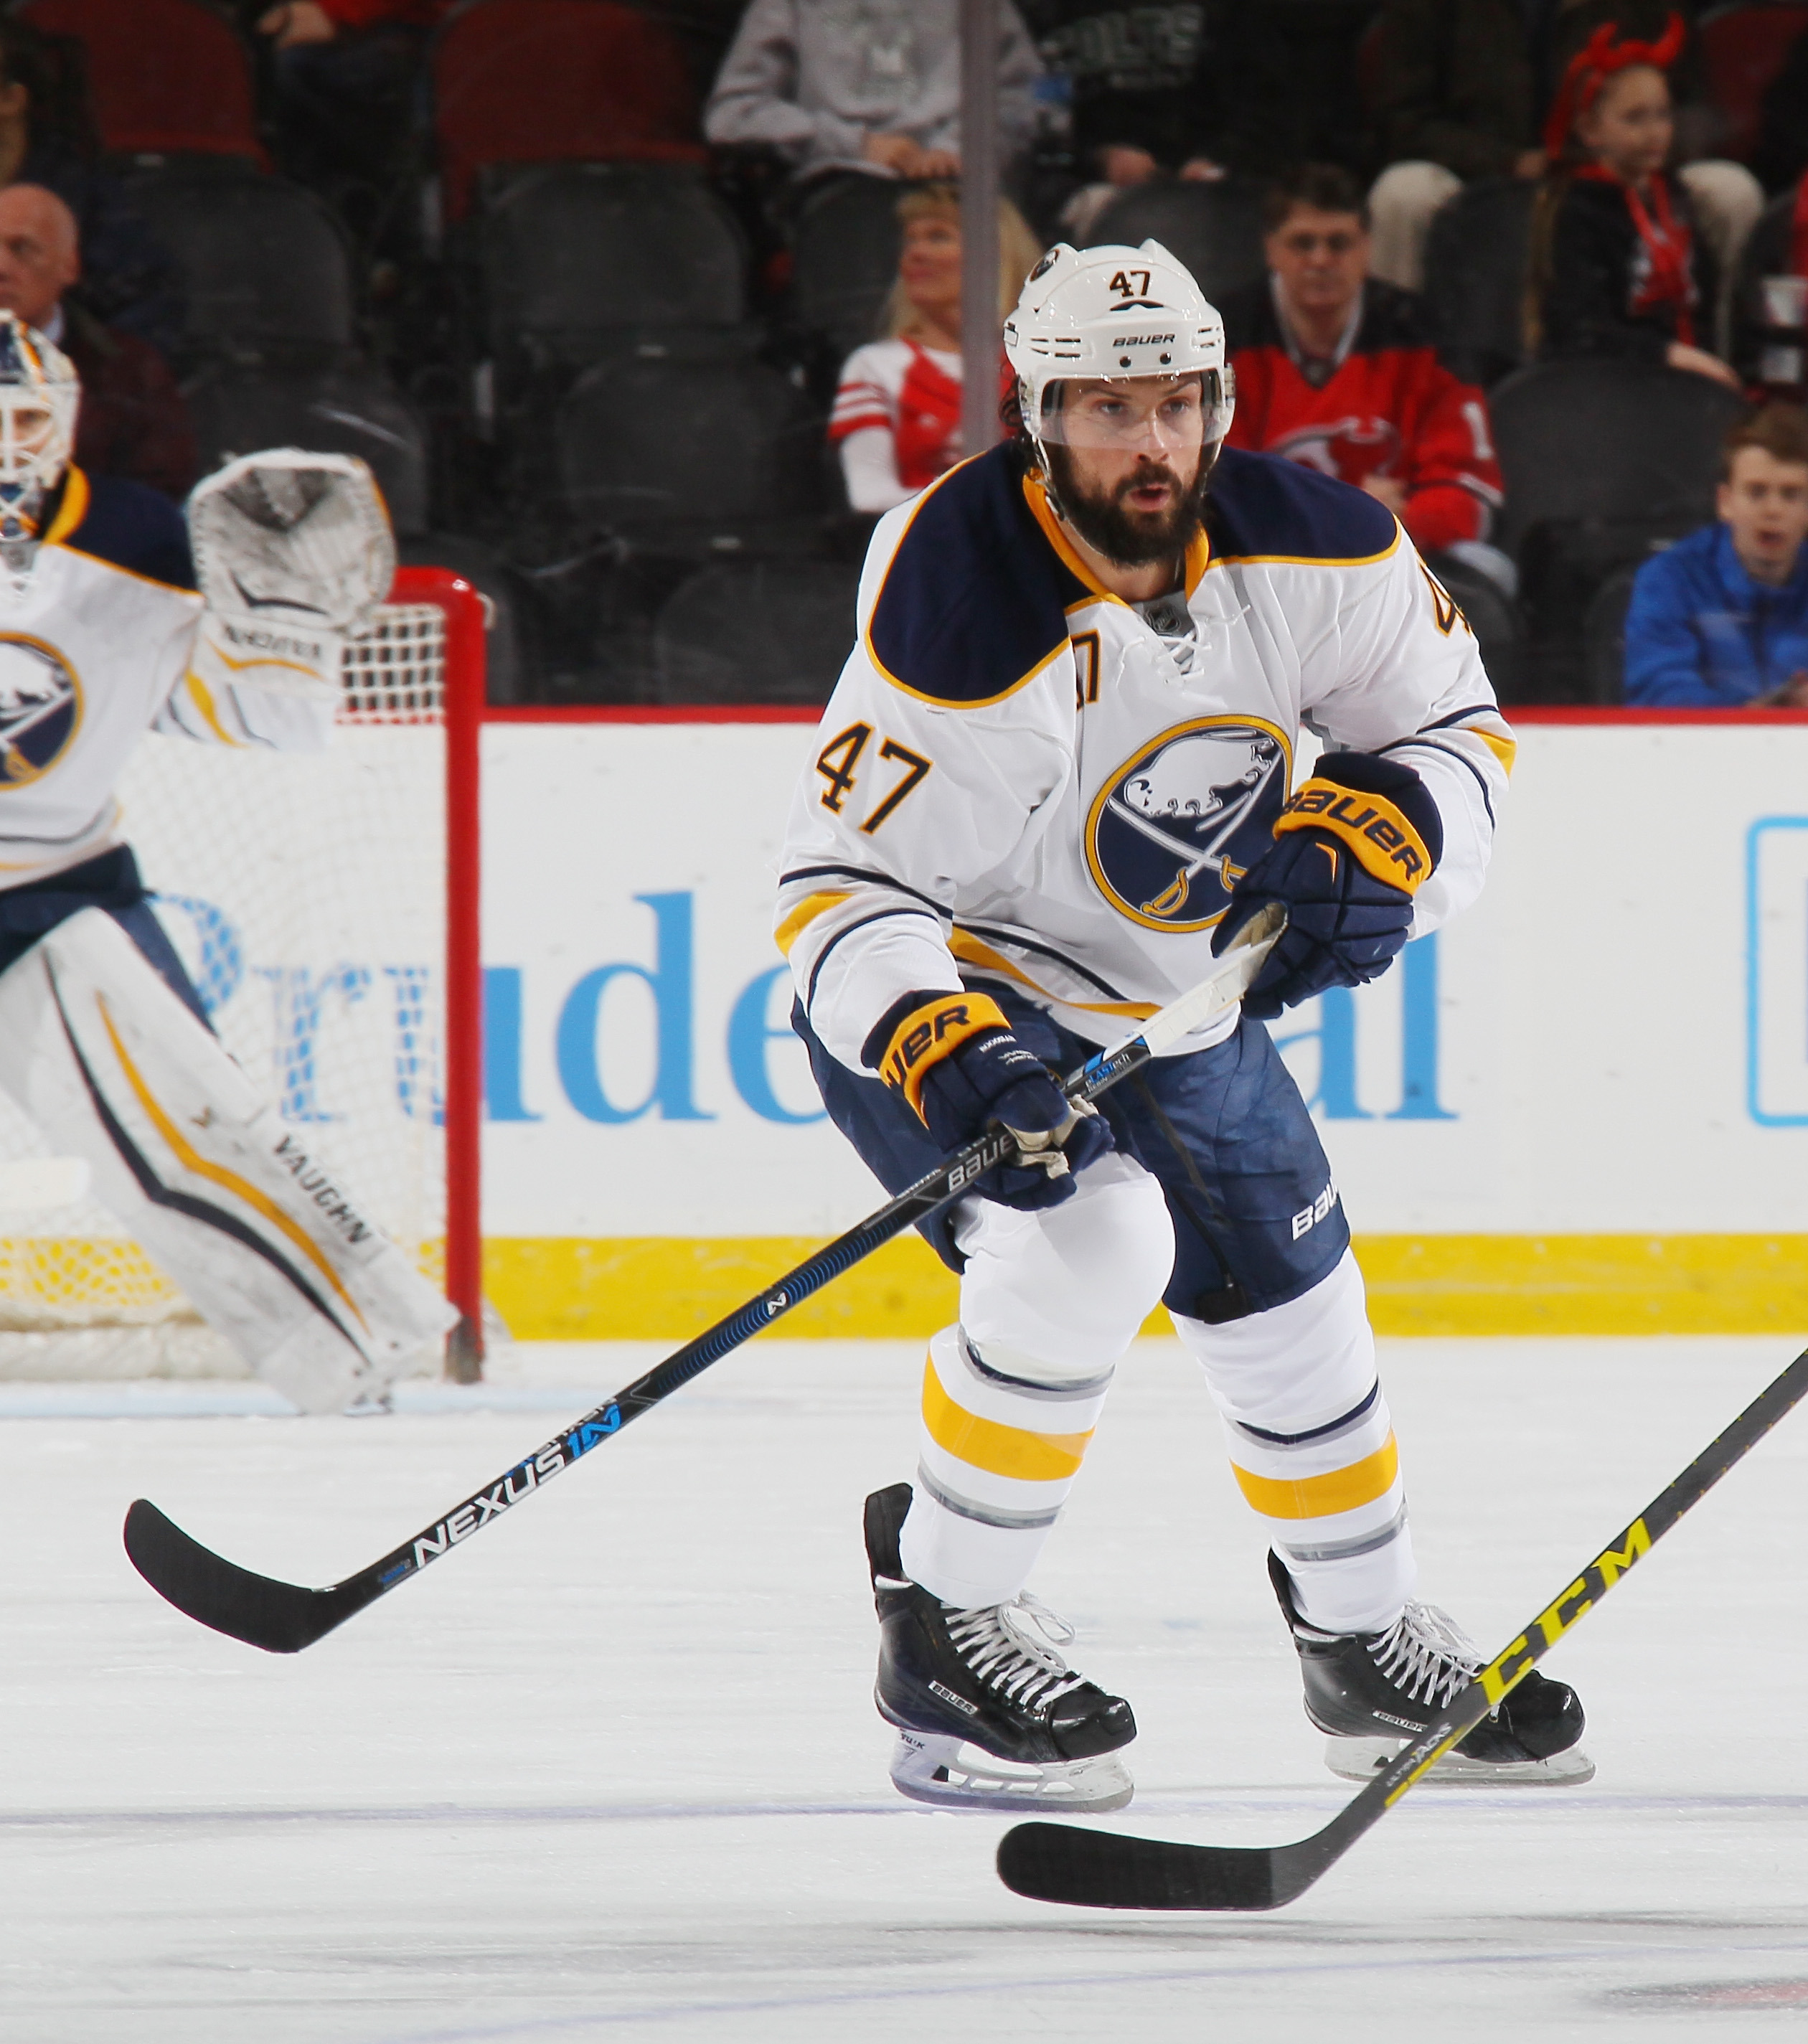 Zach Bogosian netted the winner in overtime. (News file photo)